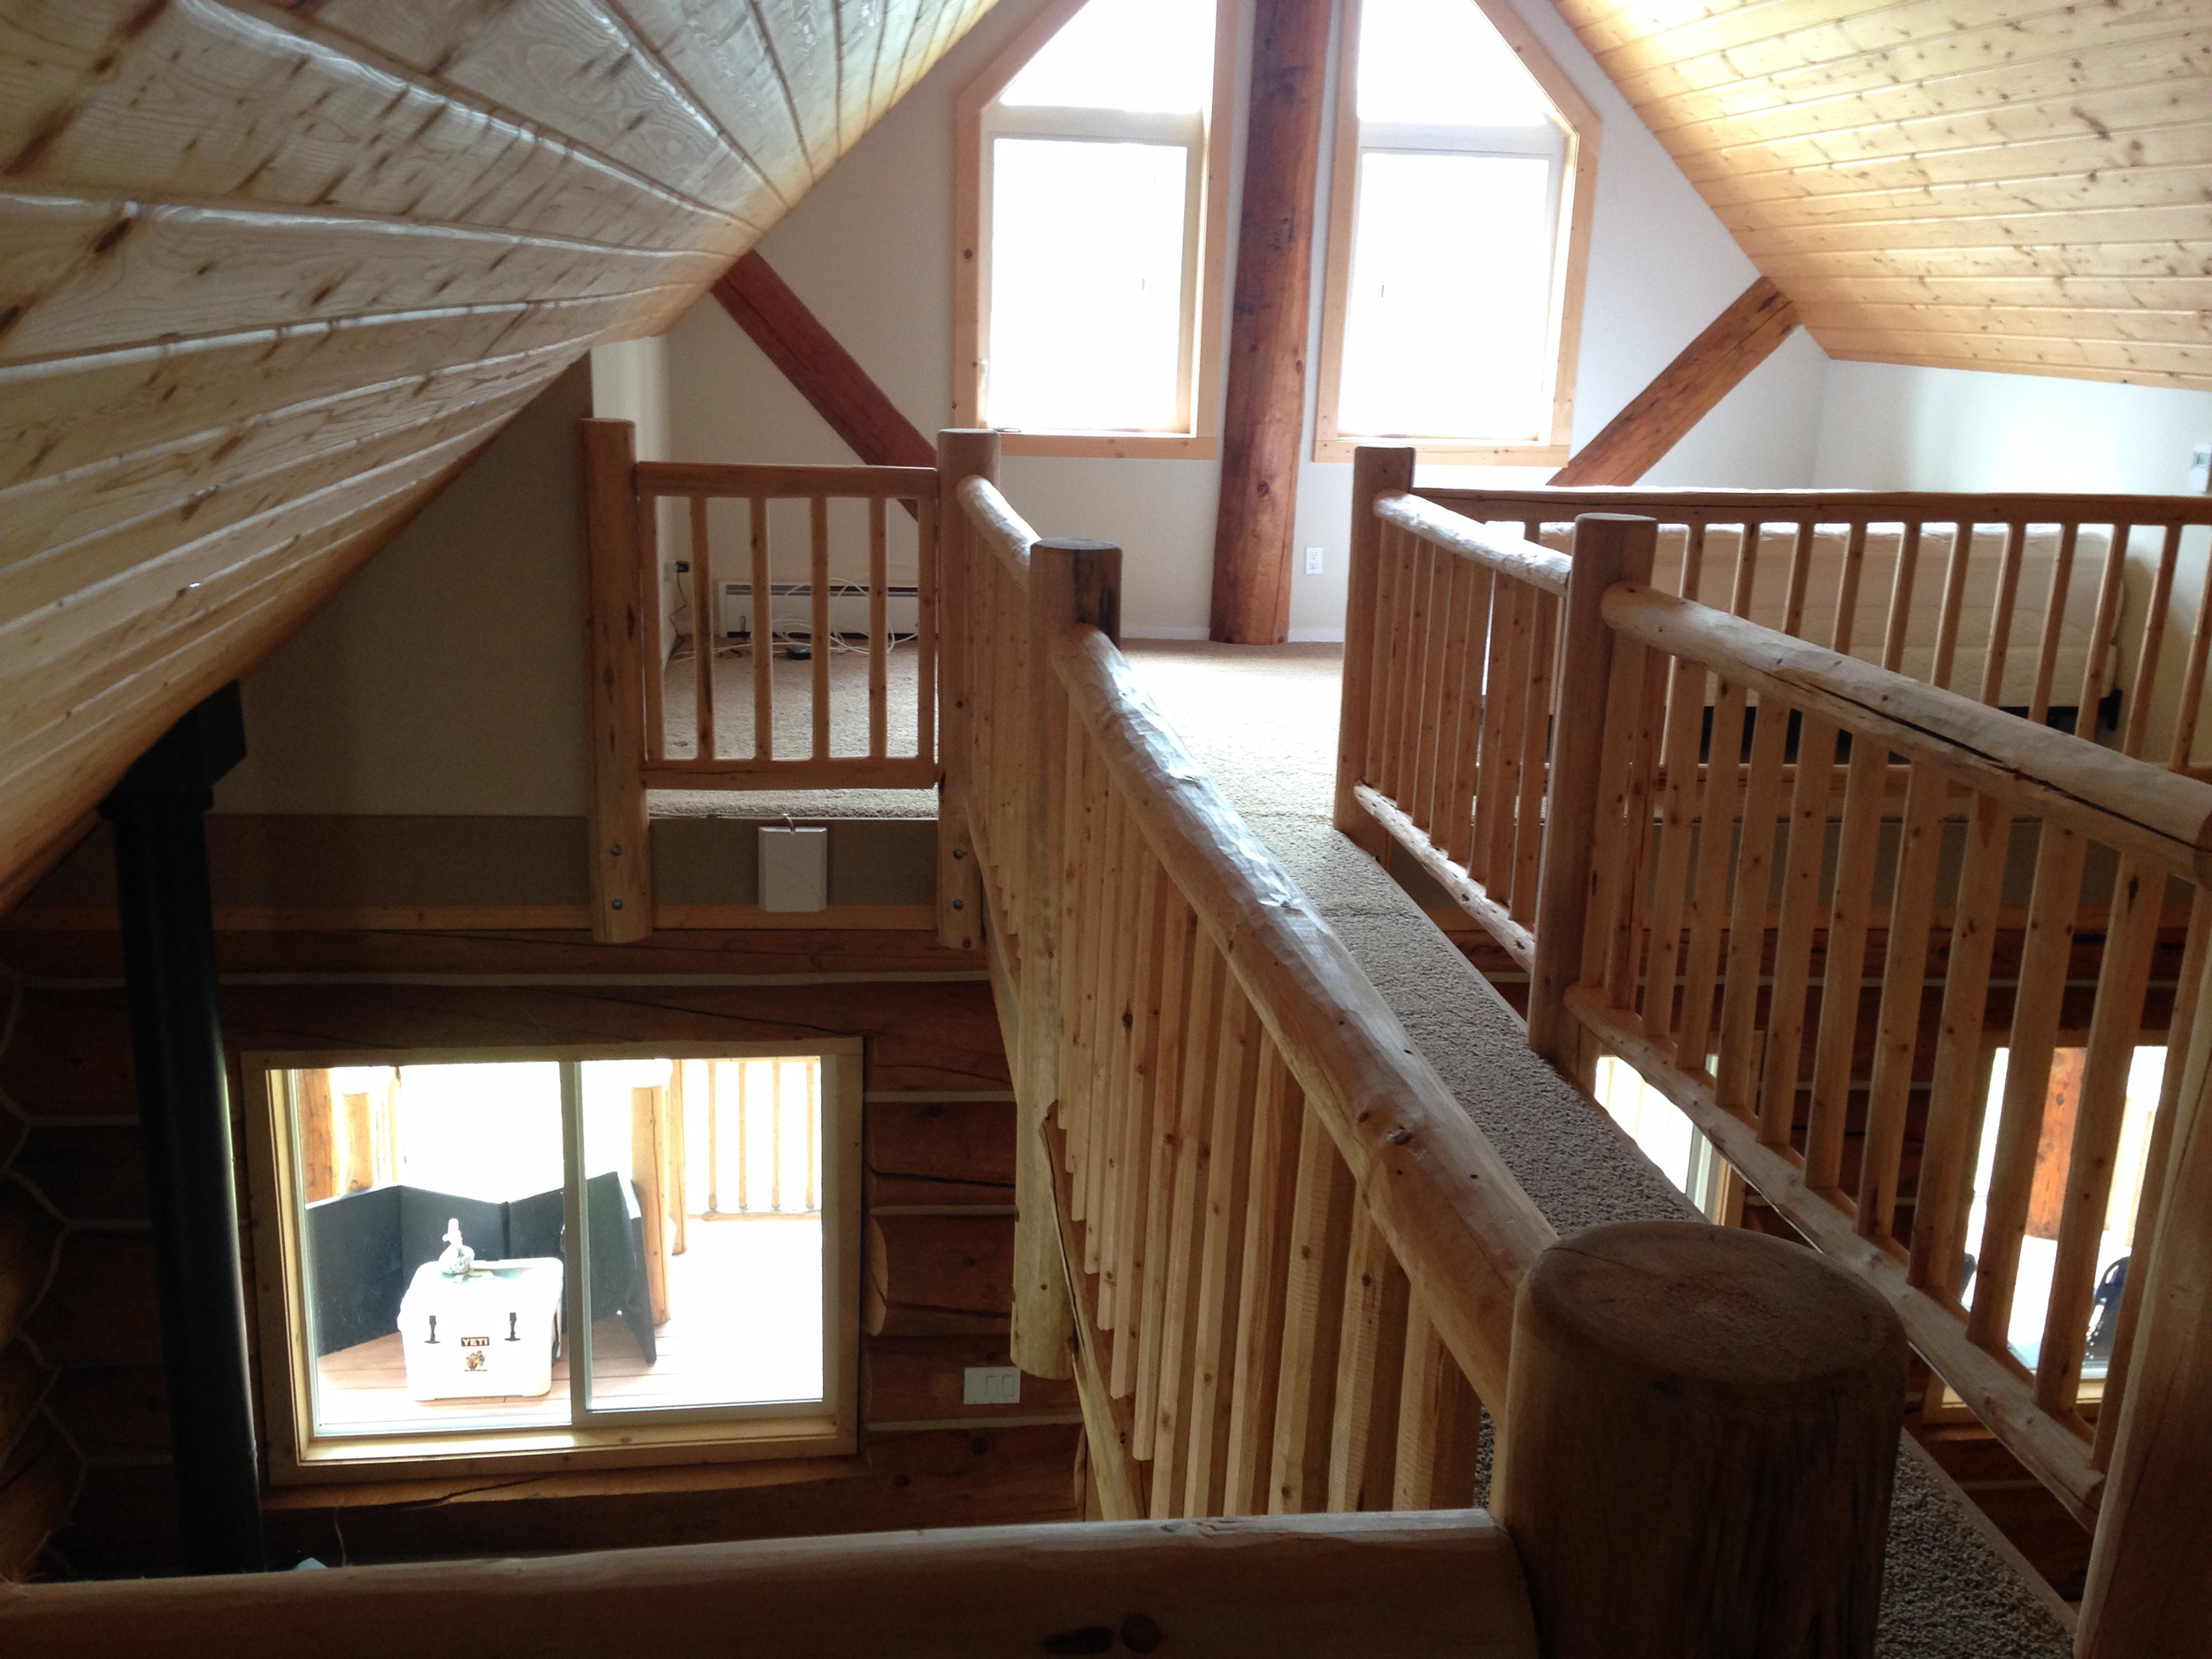 Looking across the catwalk to the guest room.